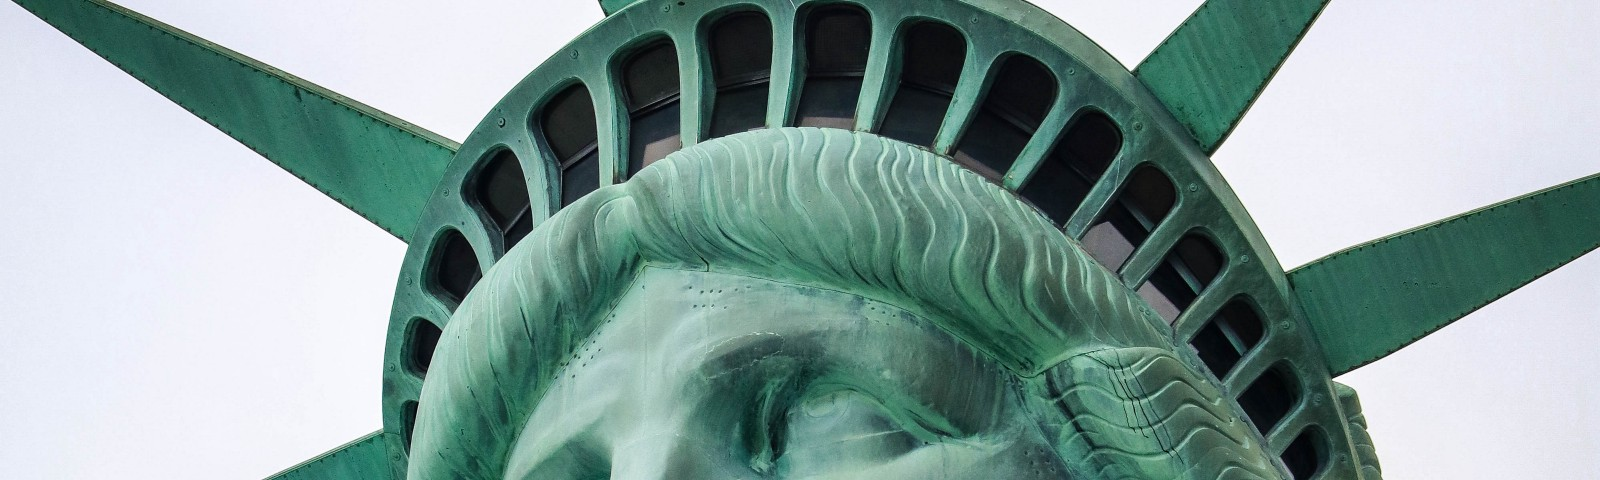 A headshot of the statue of liberty